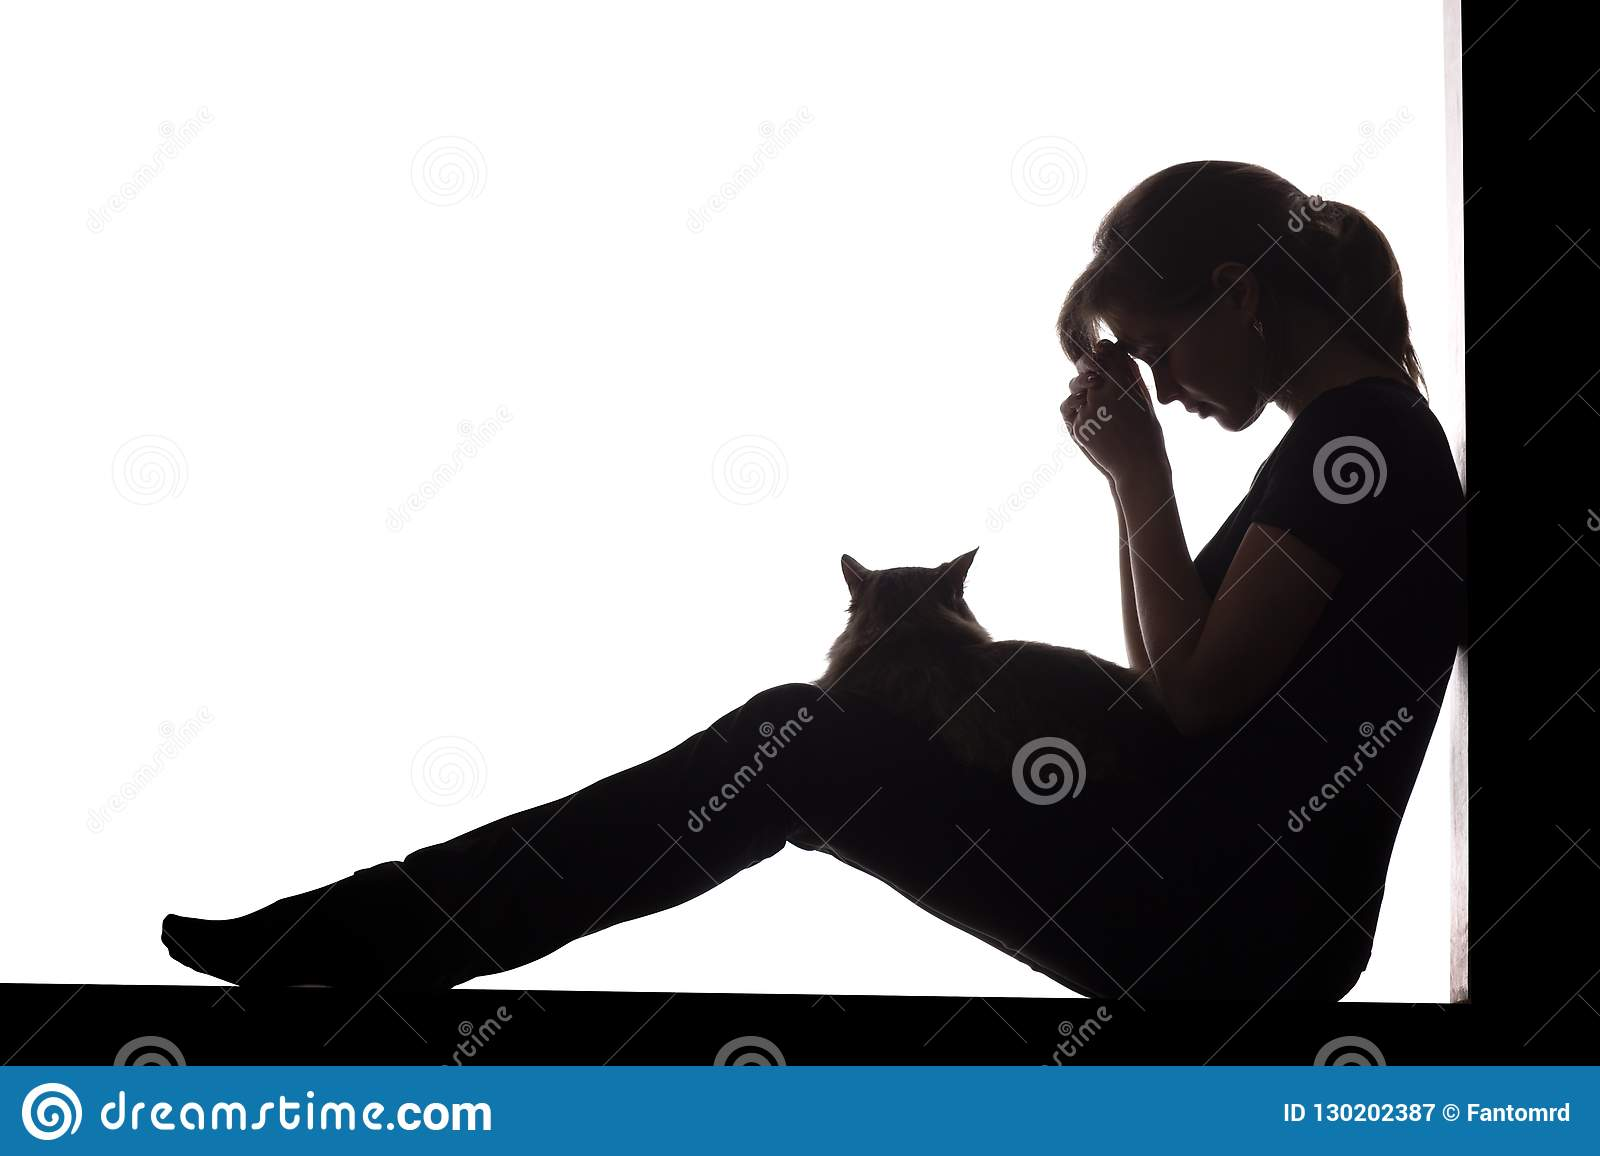 Silhouette of a woman sitting on the floor on a white isolated background with a cat in her arms, a sad girl praying